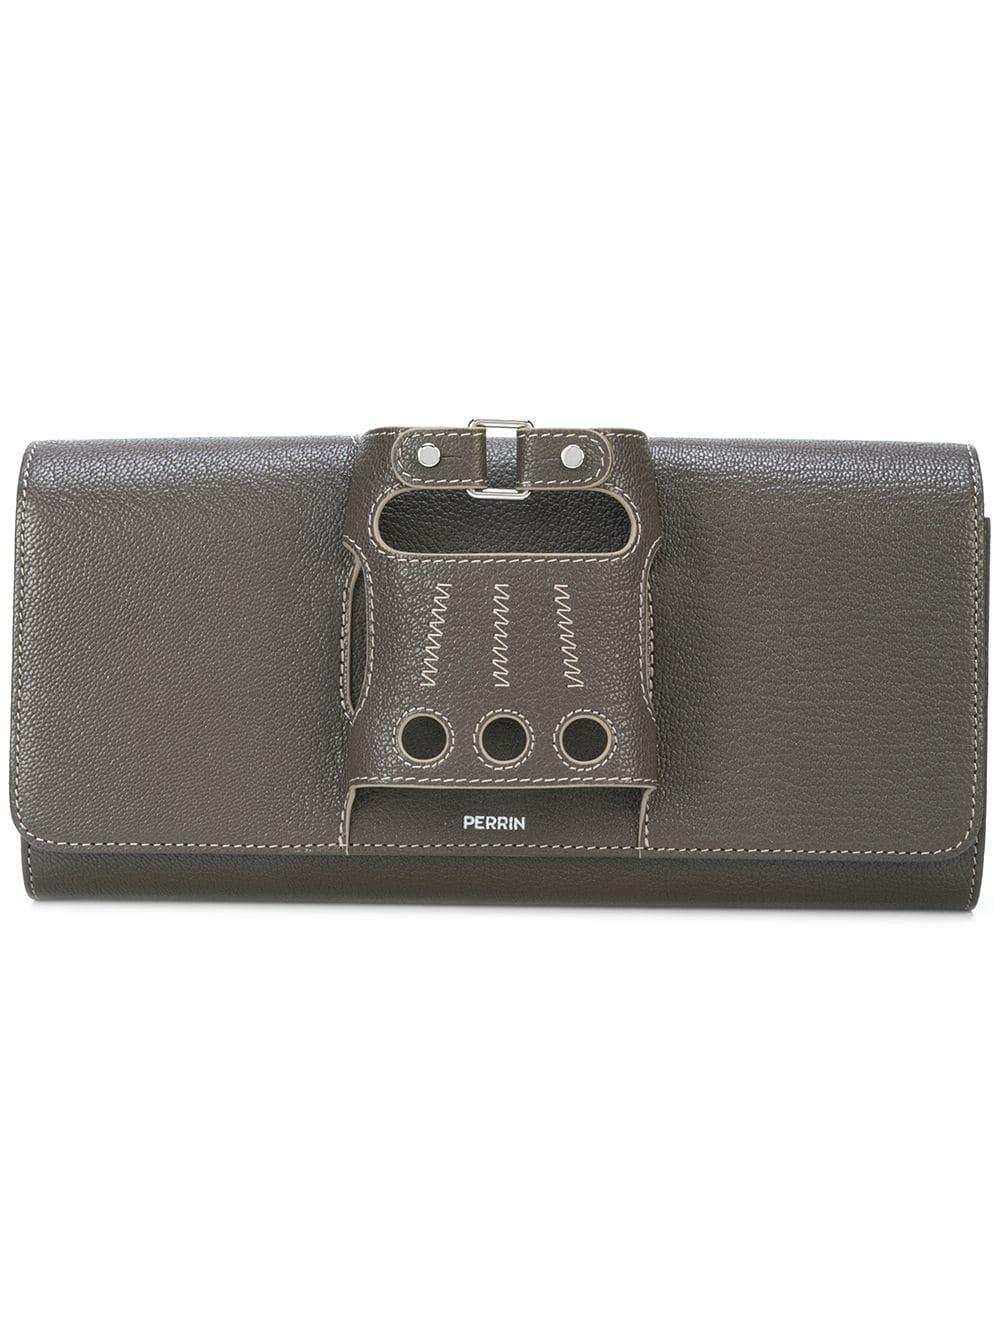 Le Cabriolet Glove Handle Clutch Bag Item # CAB5CALS-F18